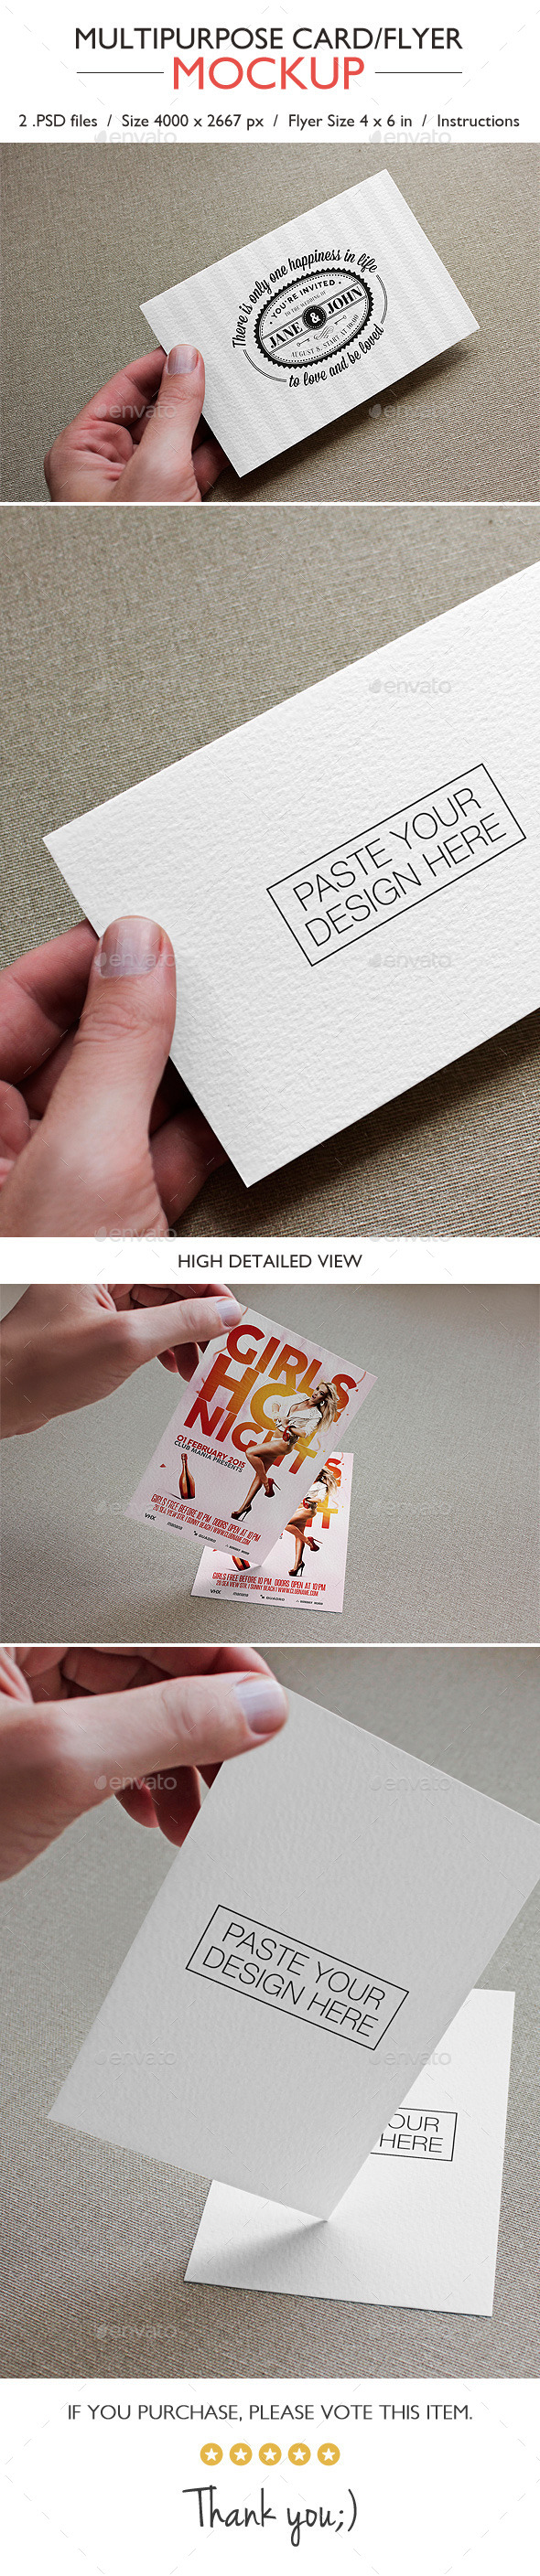 GraphicRiver Multipurpose Card Flyer Mockup 11130028